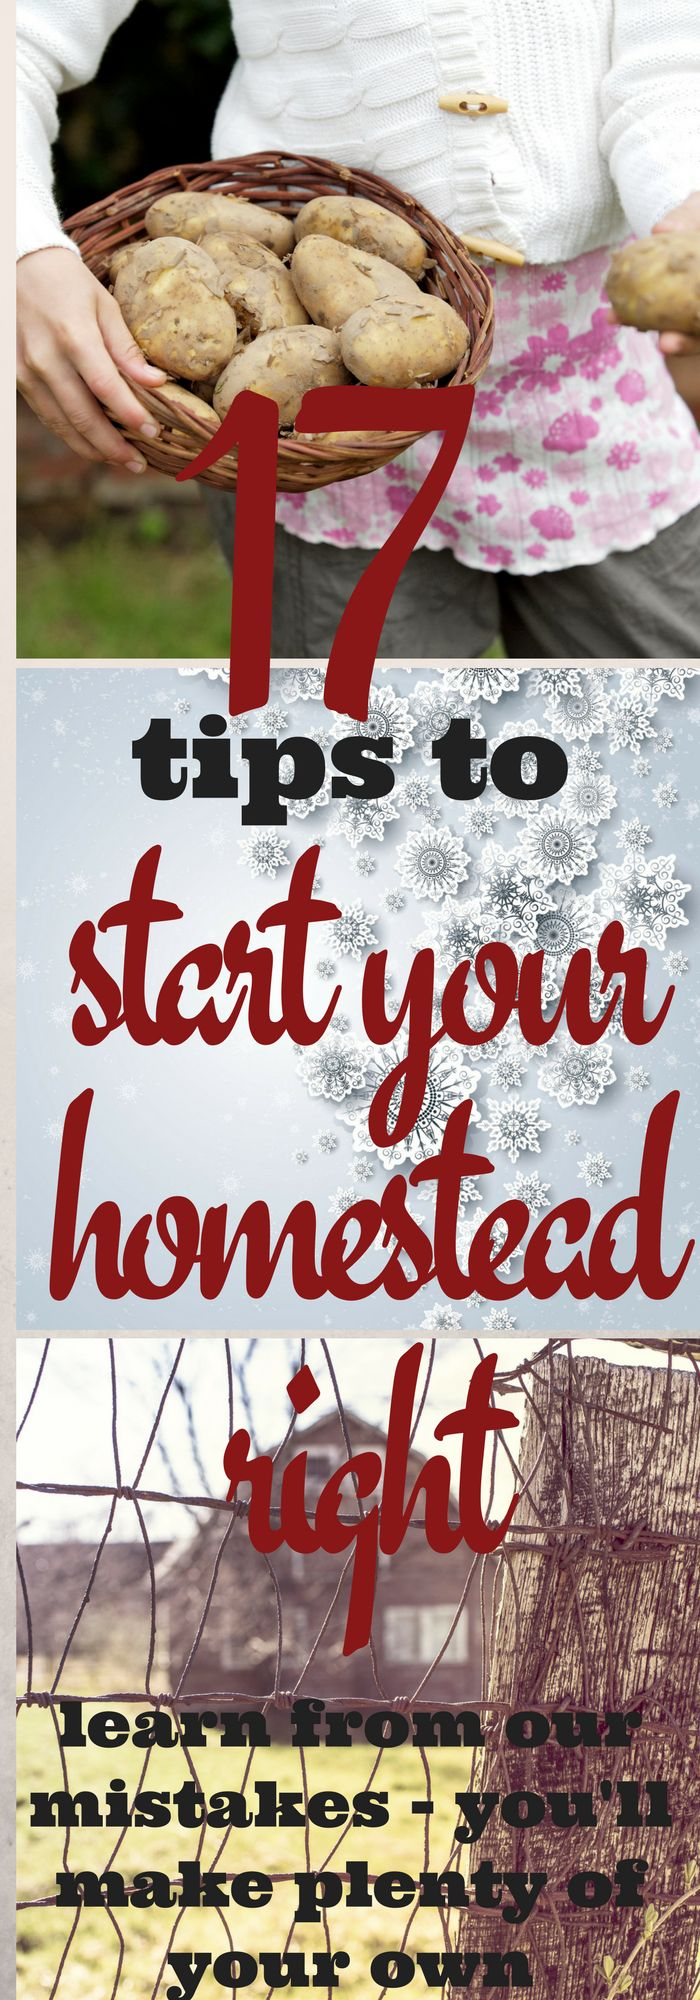 There are plenty of mistakes to make when setting up a homestead. Learn from ours - you'll make plenty of your own - and get your homestead off on the right foot